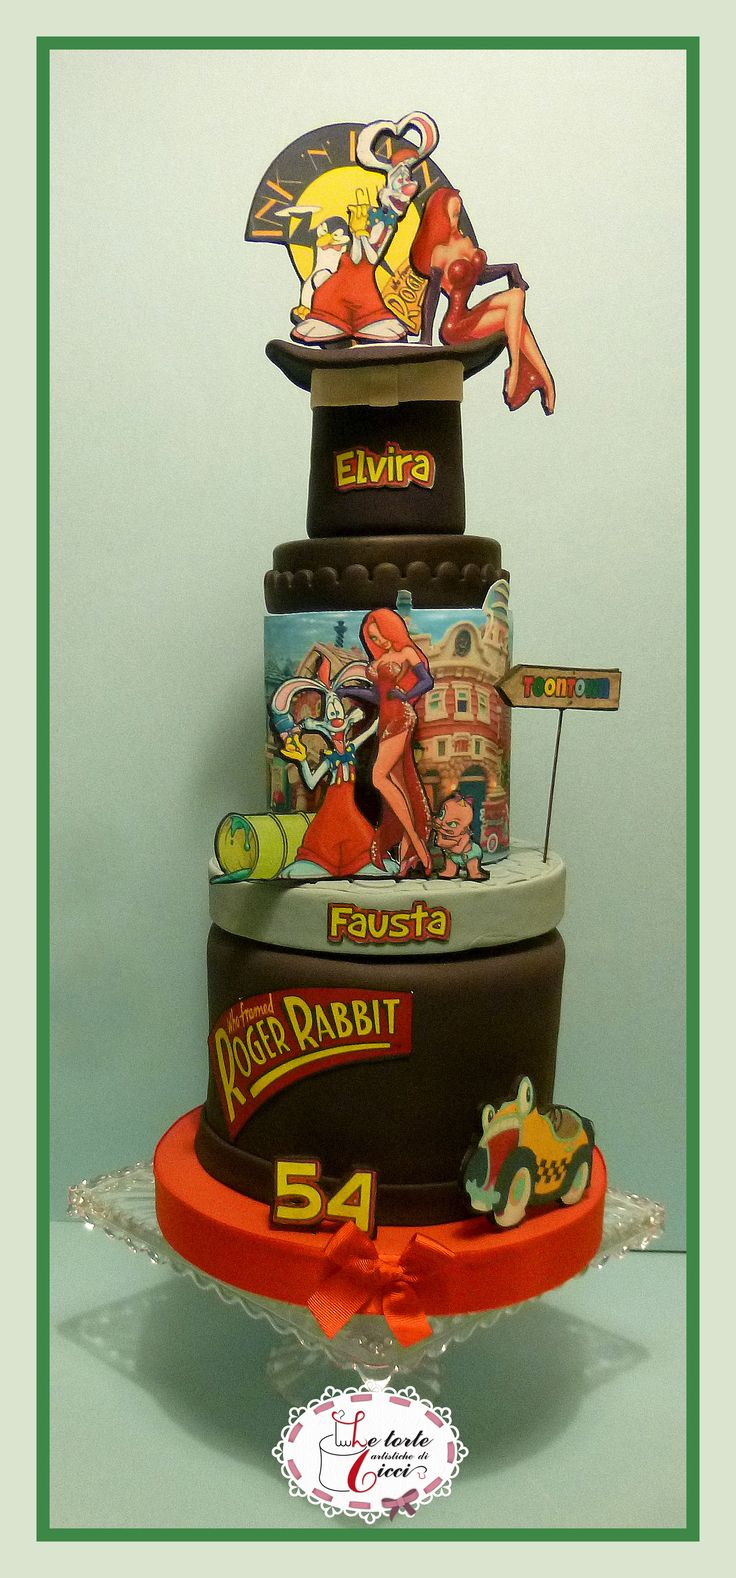 Roger Rabbit's cake foundant